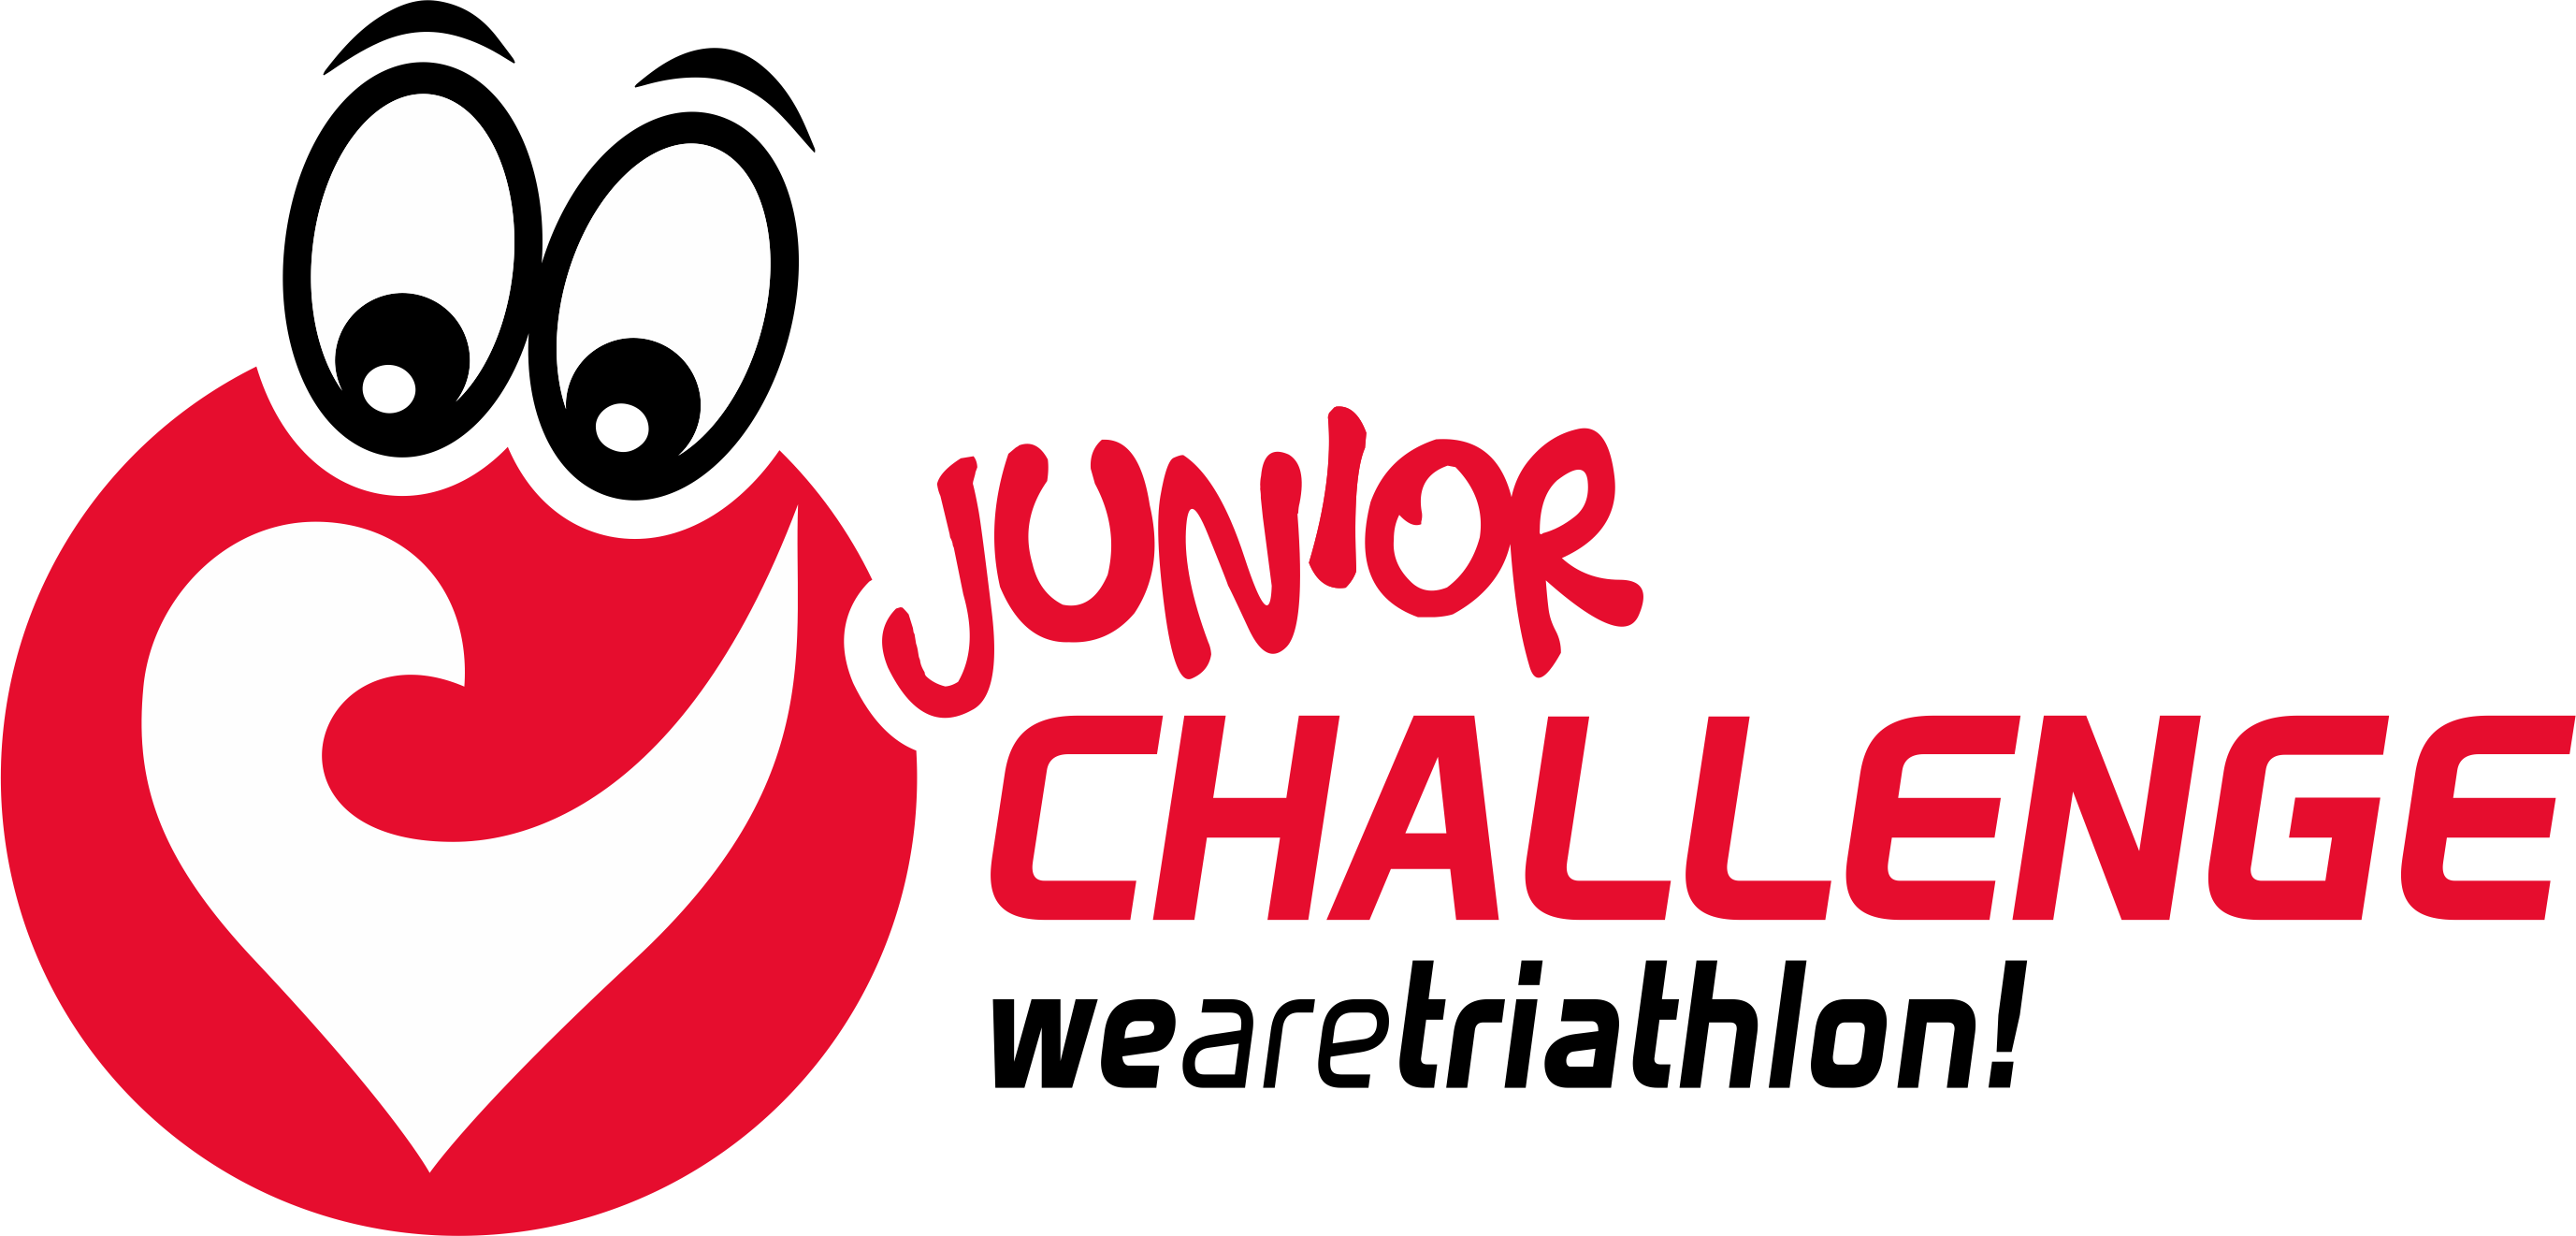 logo-challenge-junior